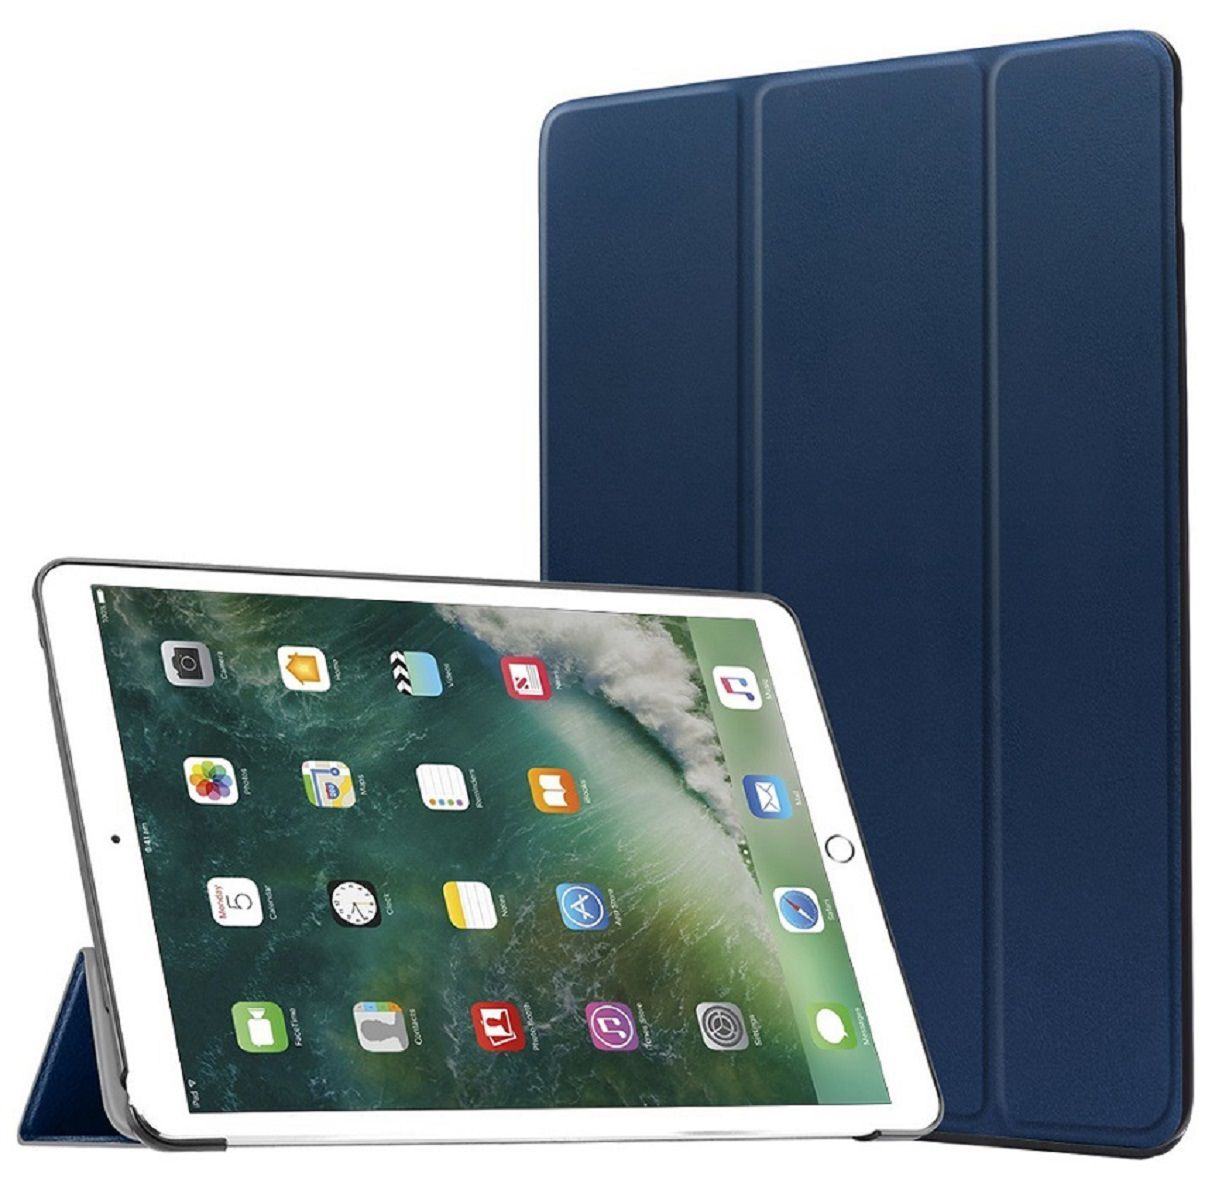 Smart Case Ipad Pró 12.9 Apple 2017 A1670 A1671 Sensor Sleep Azul Marinho